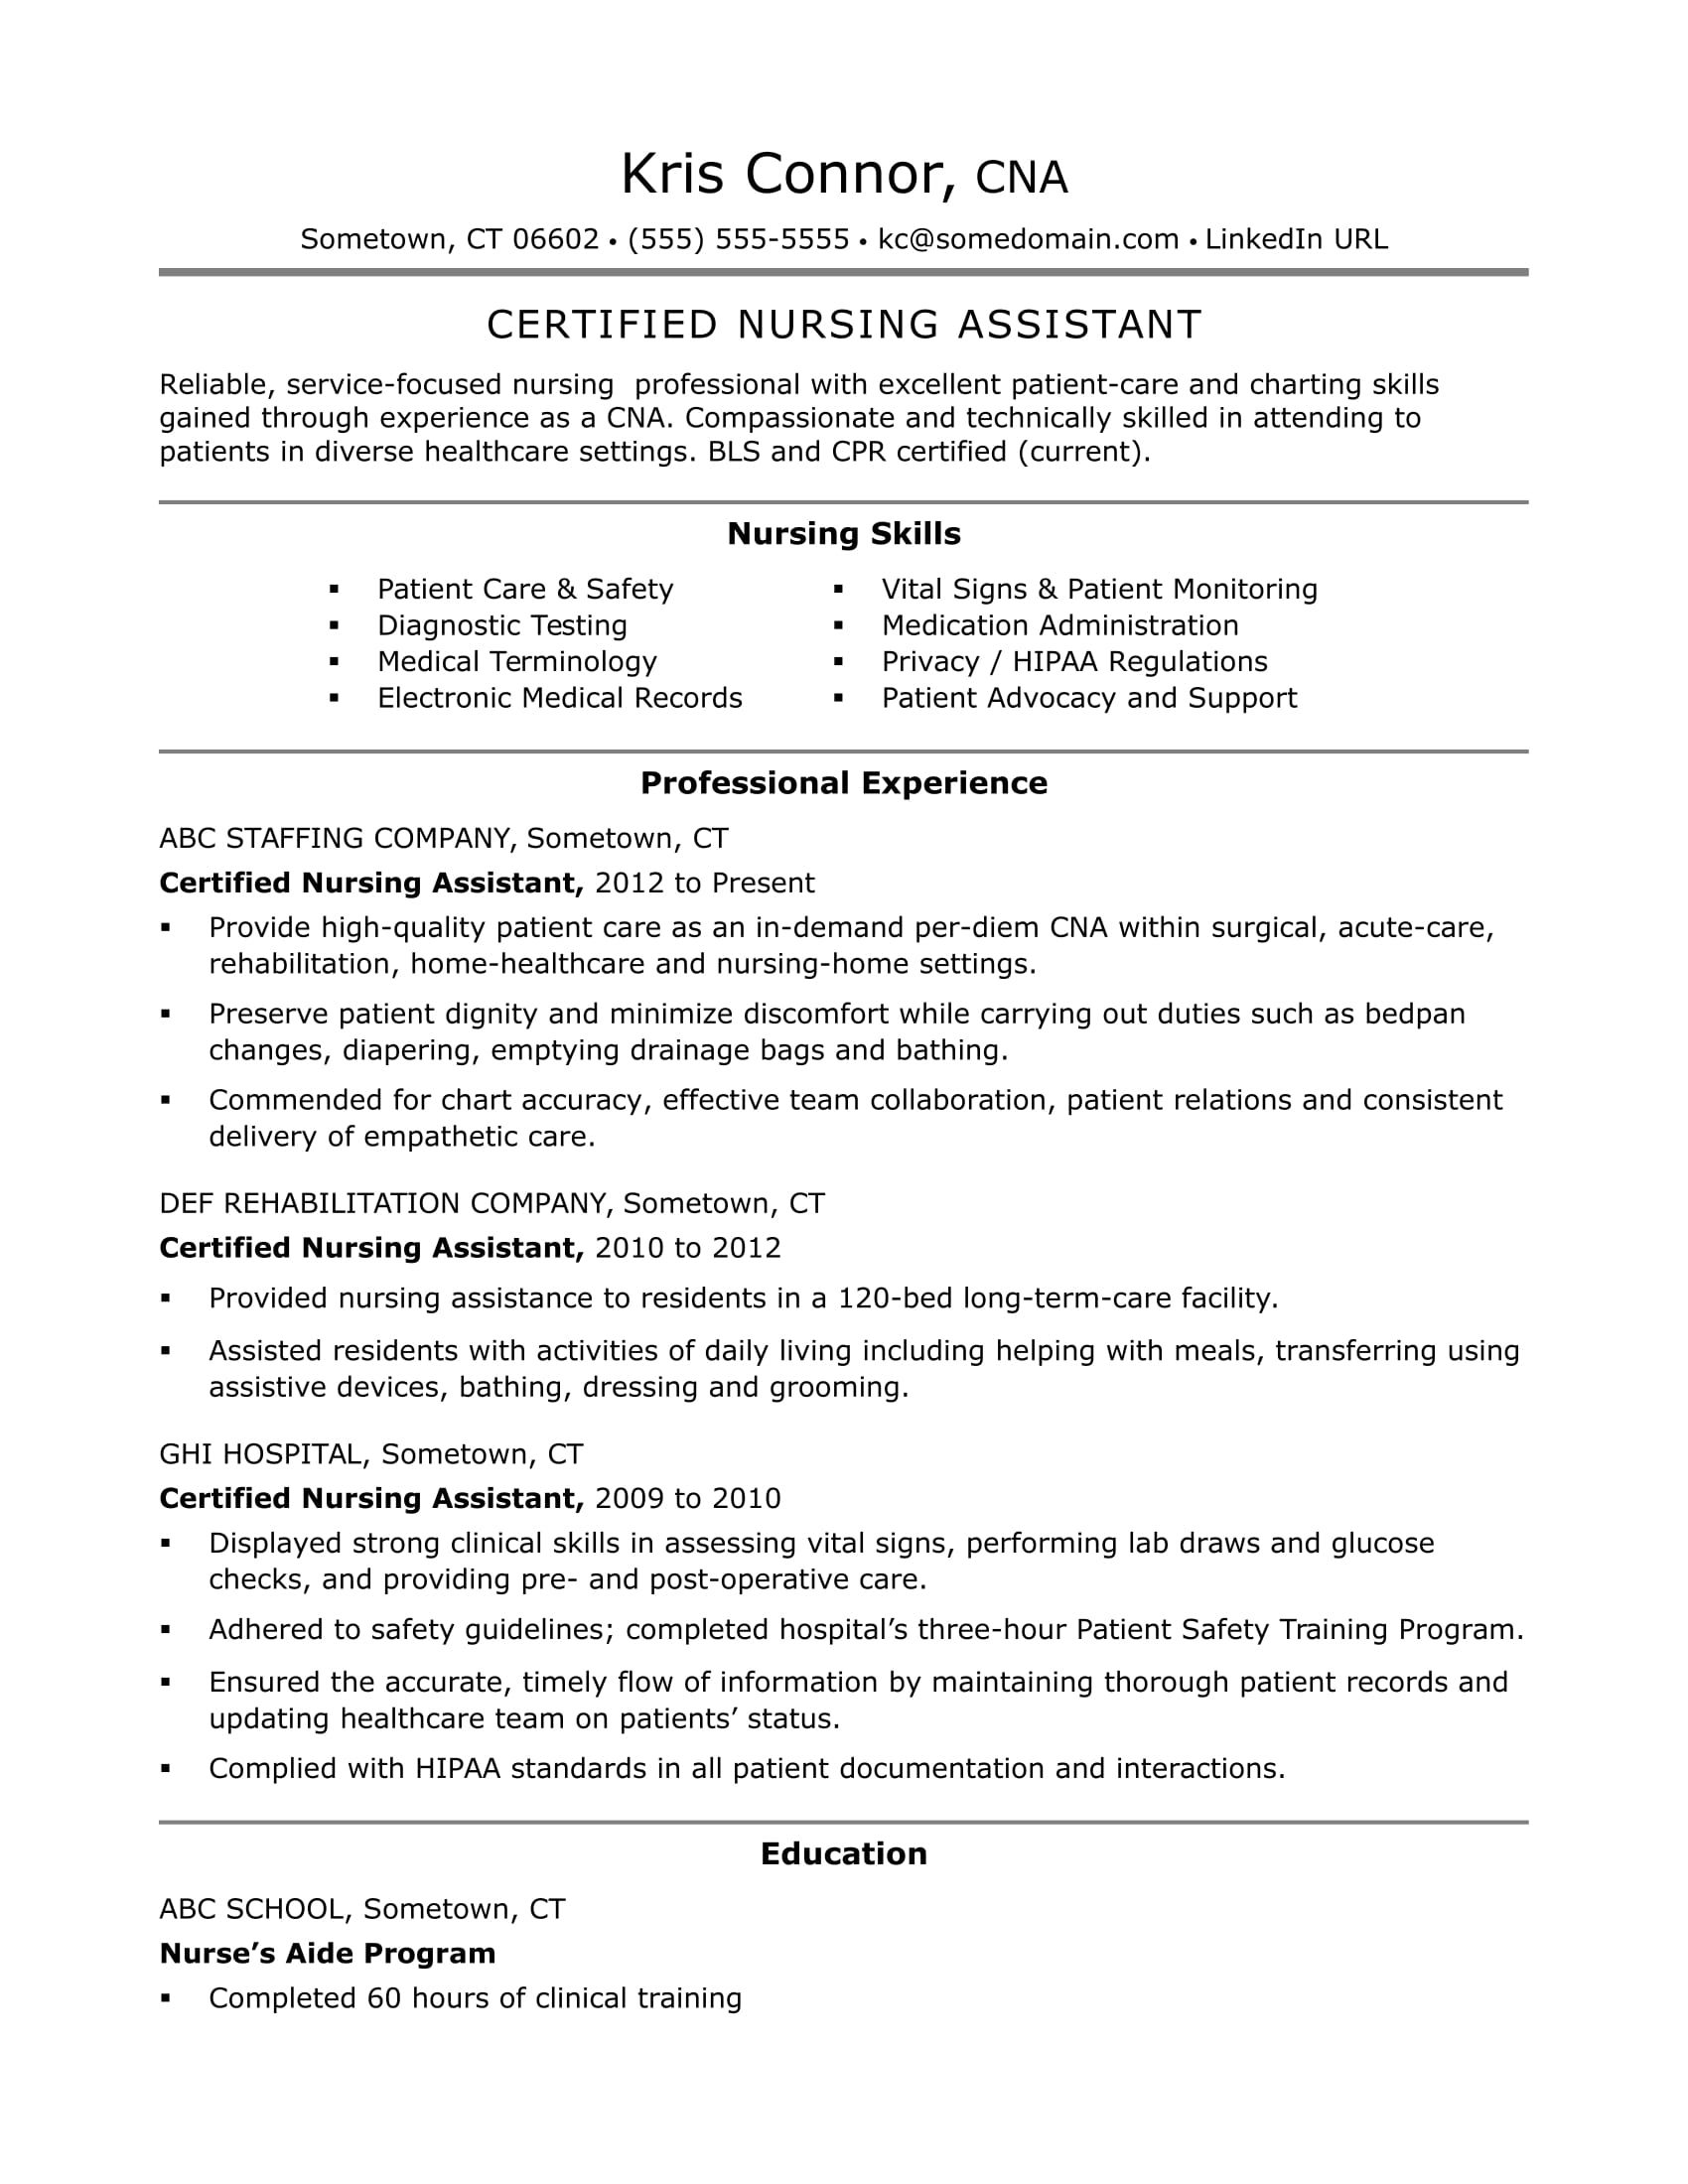 Cna resume examples skills for cnas monster cna resume example xflitez Choice Image